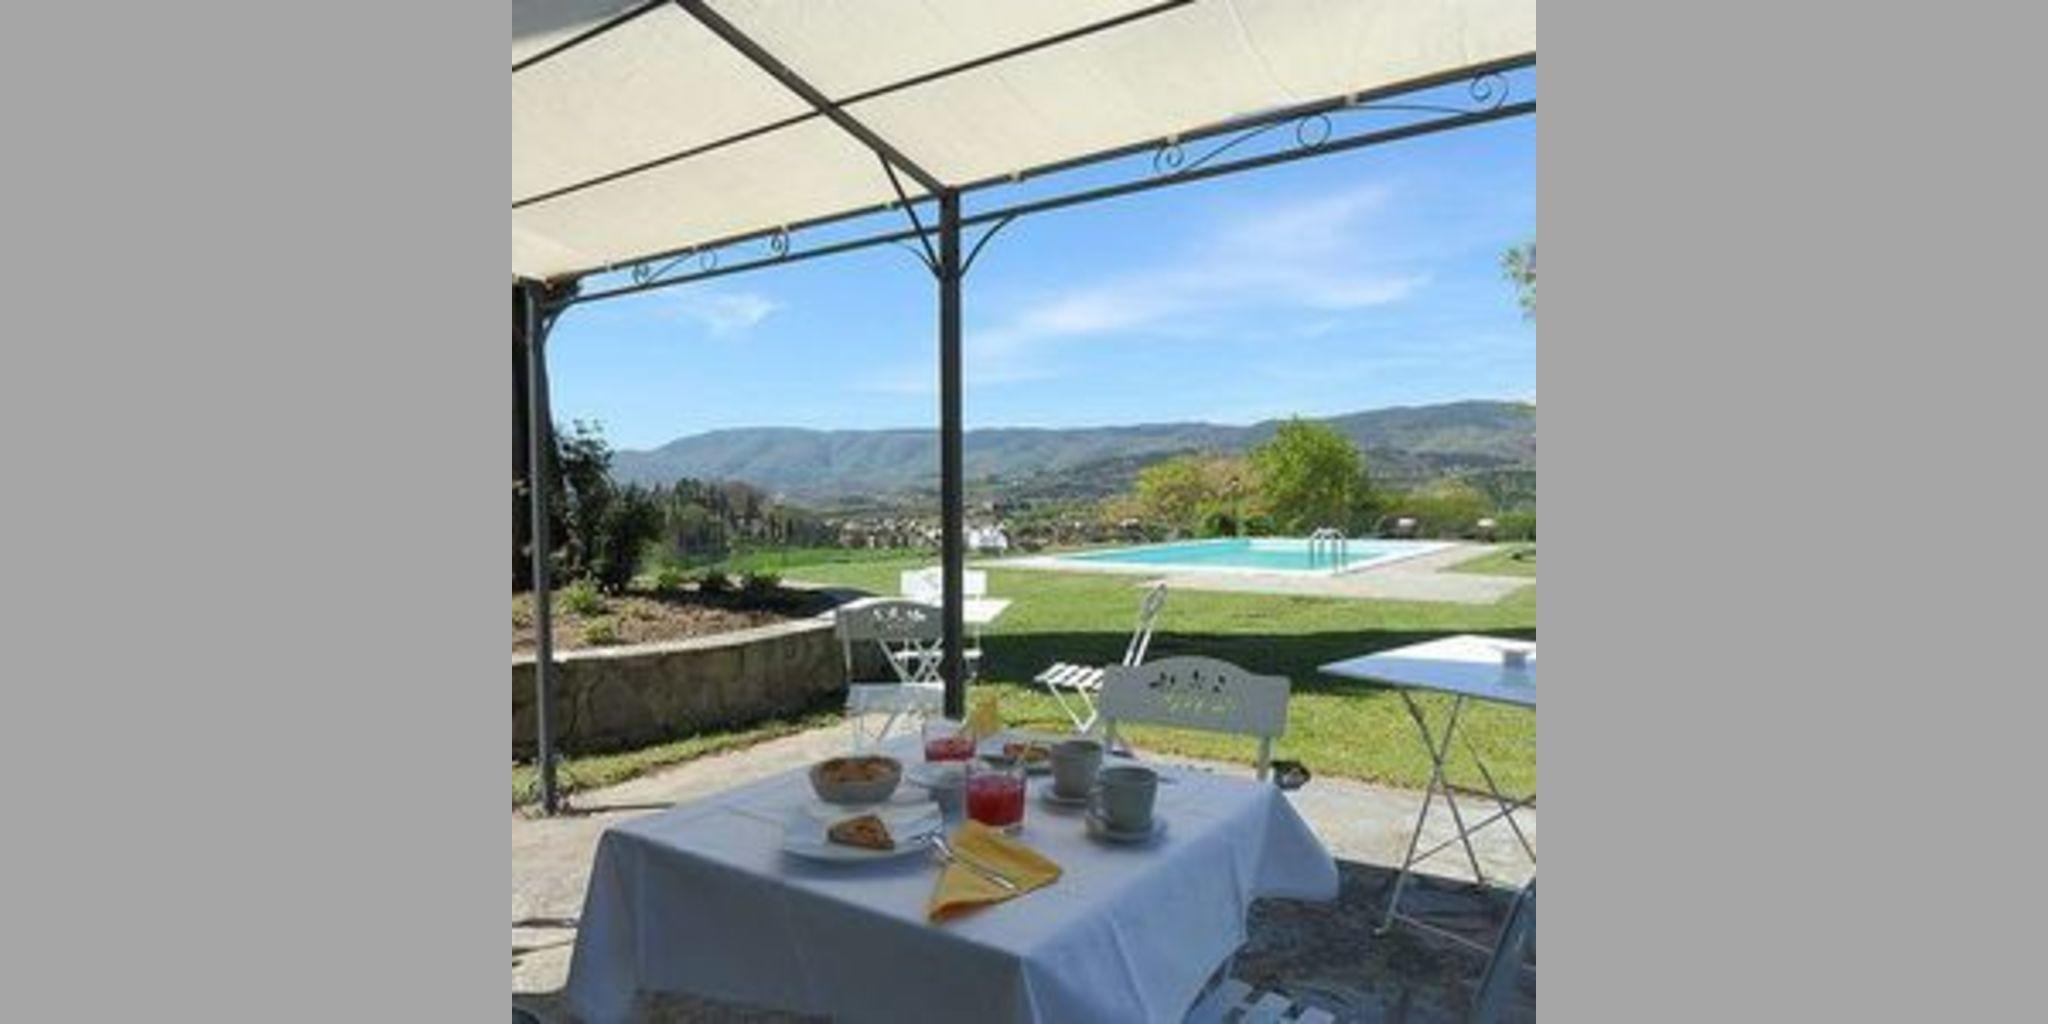 Bed & Breakfast Barberino Di Mugello - Barberino Di Mugello